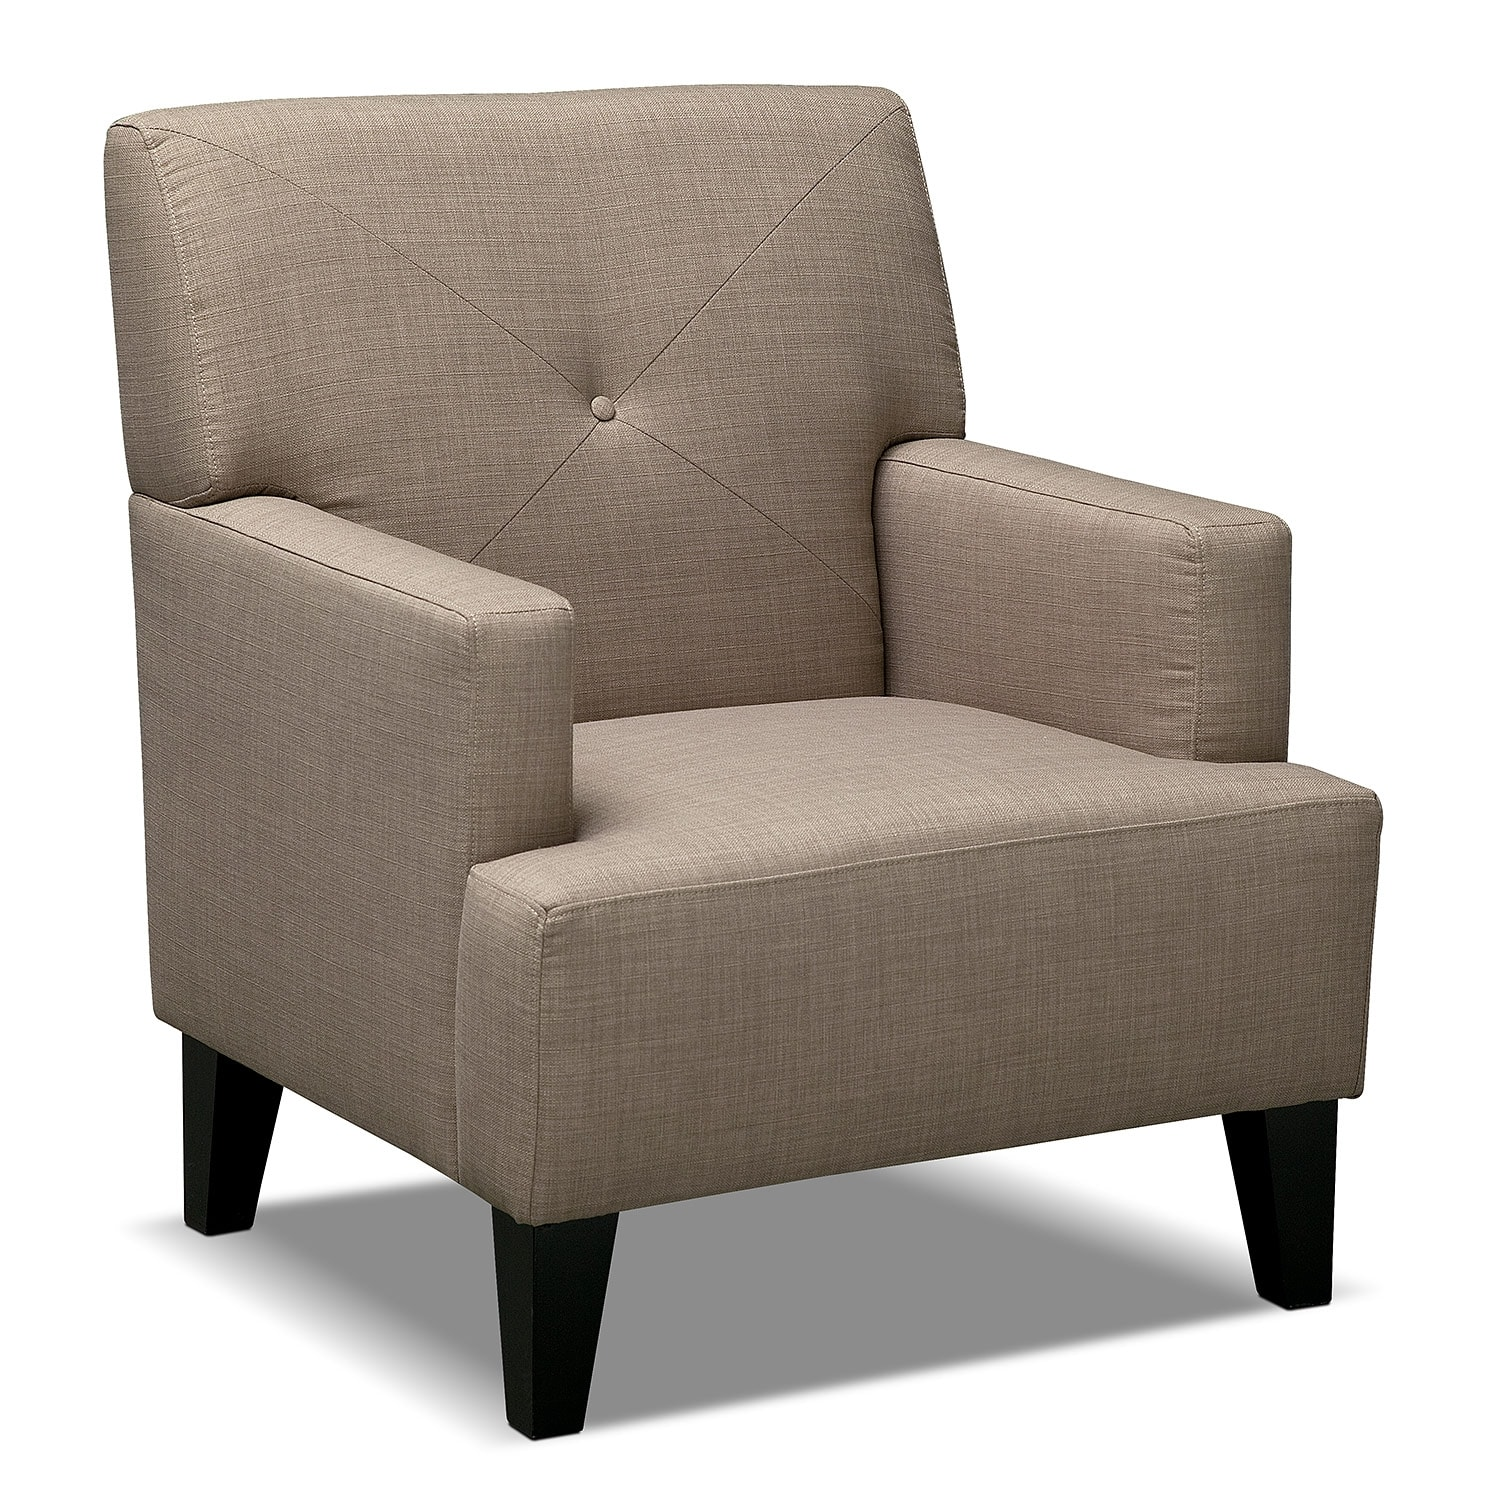 Avalon accent chair wheat value city furniture for Living room with accent chairs